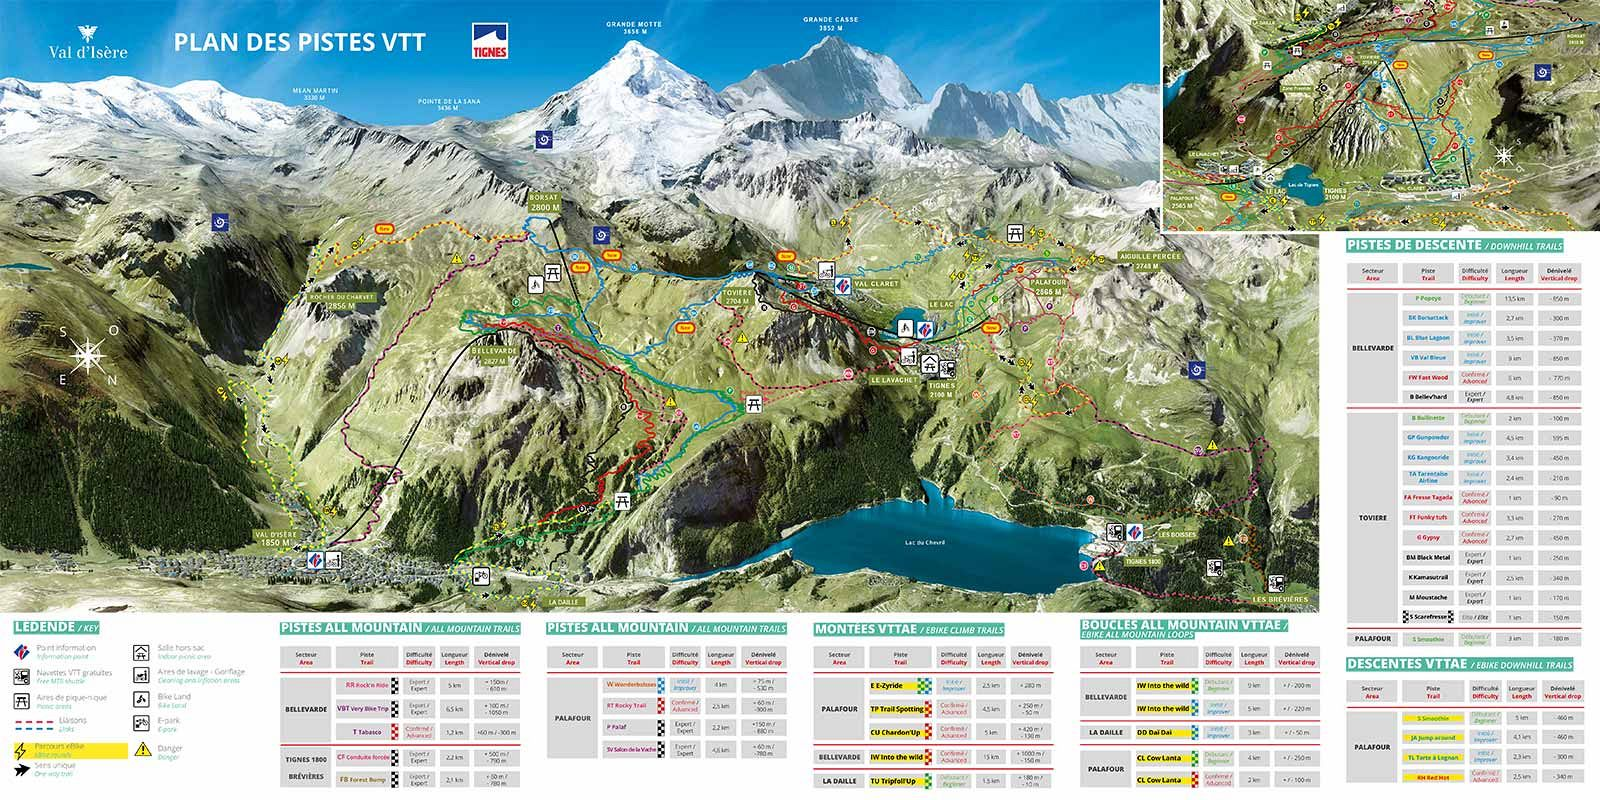 Val dIsere Francija trail map